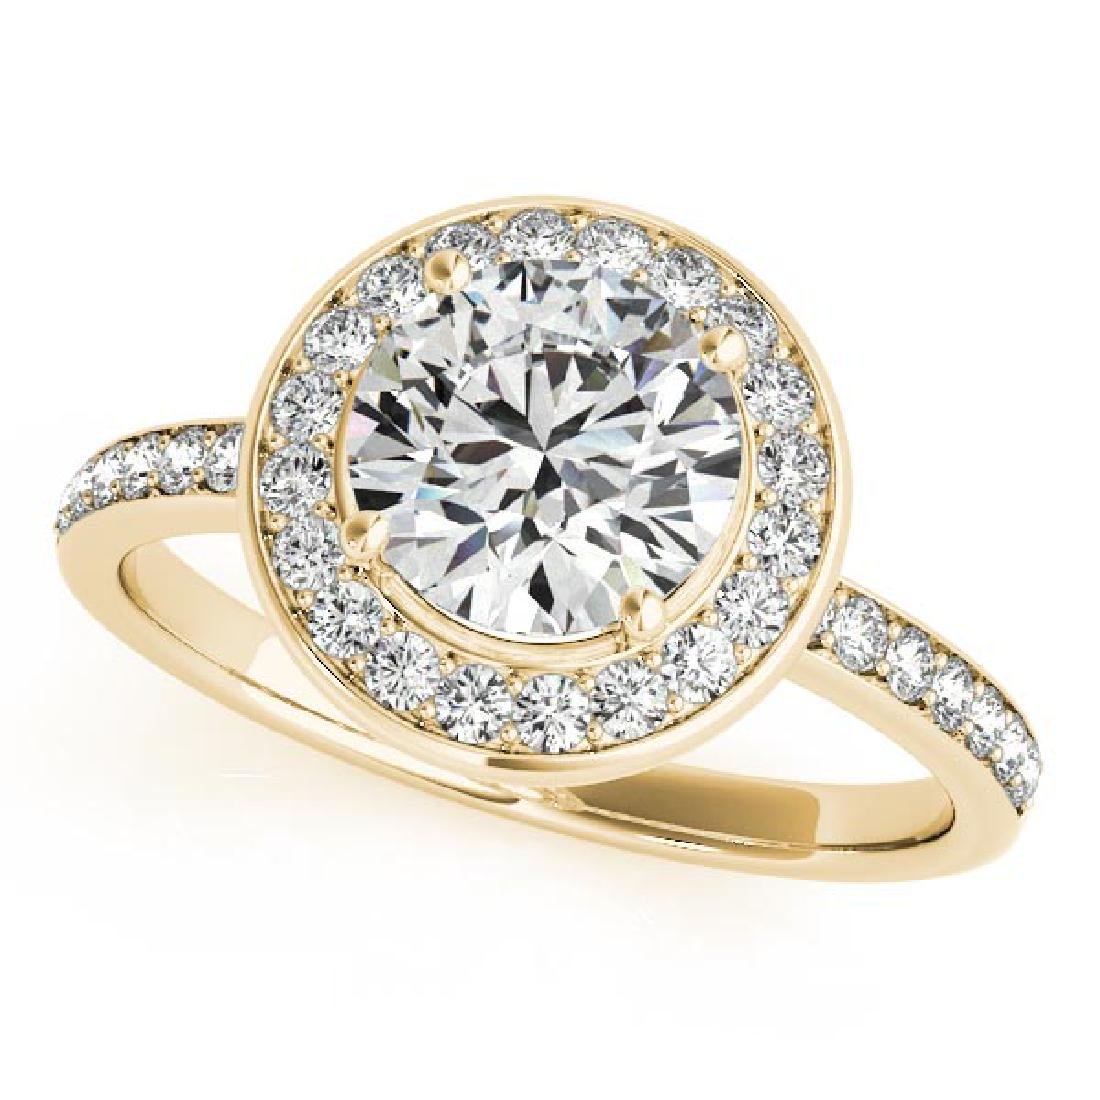 CERTIFIED 18K YELLOW GOLD 1.54 CT G-H/VS-SI1 DIAMOND HA